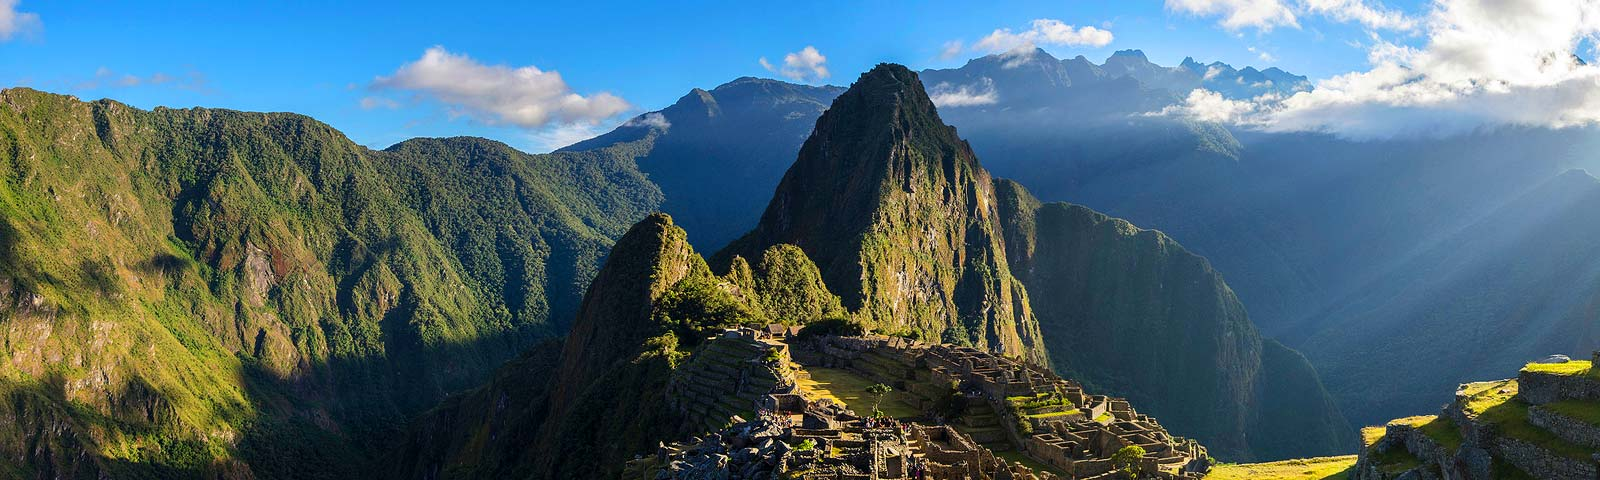 CUSCO AND MACHUPICCHU SUNRISE IN 5 DAYS